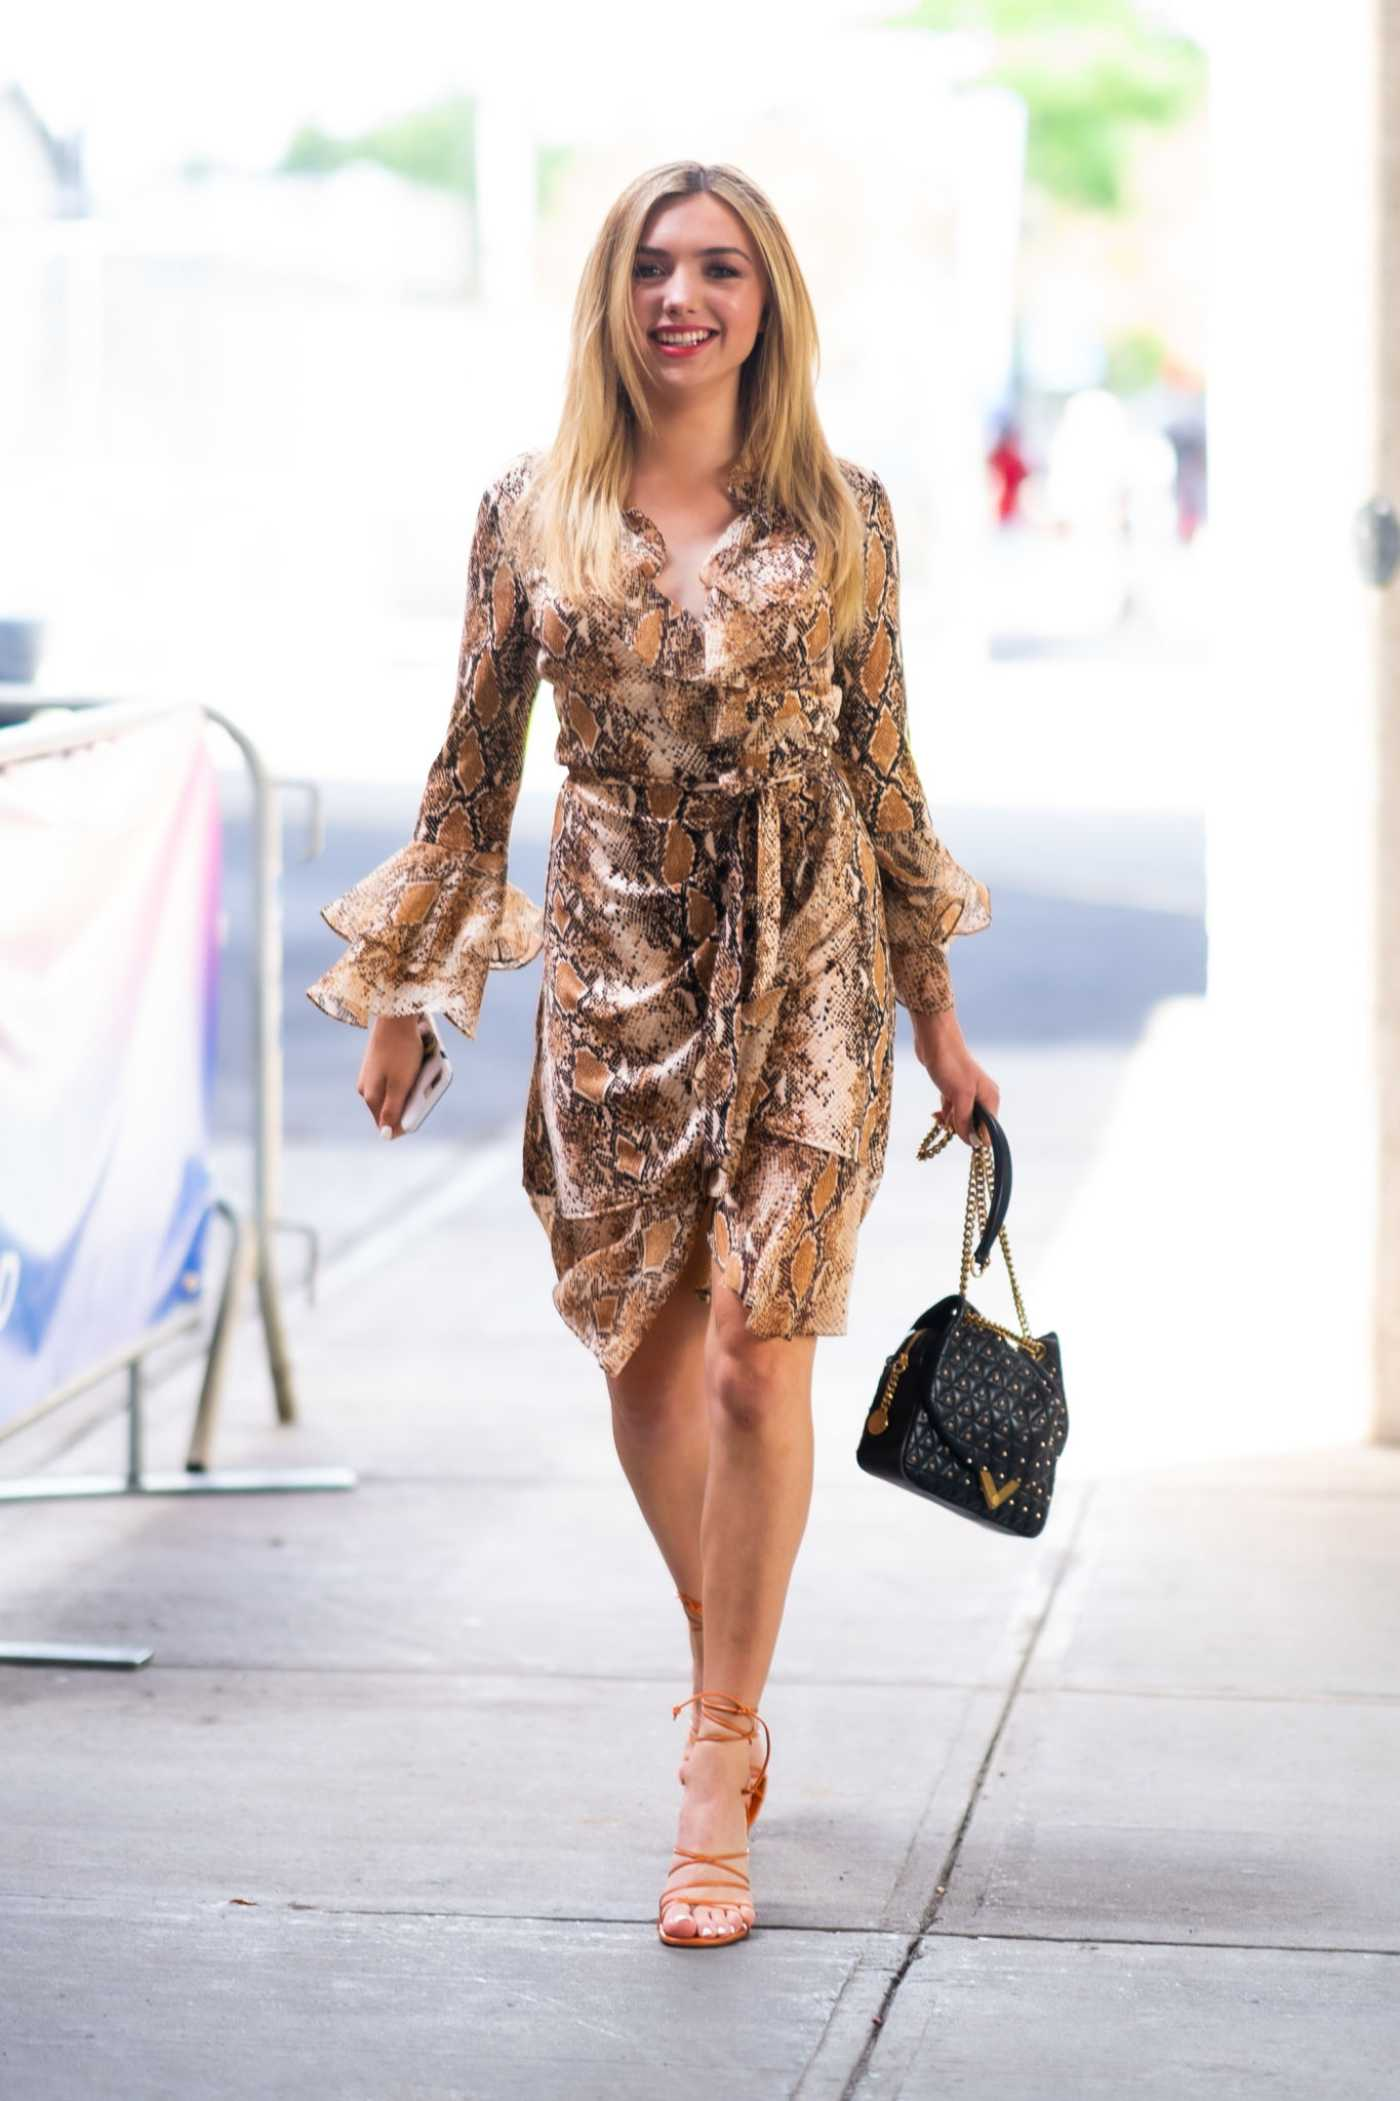 Peyton List in a Snakeskin Dress Attends 2019 POPSUGAR Play/Ground at Pier 94 in Midtown in New York City 06/22/2019